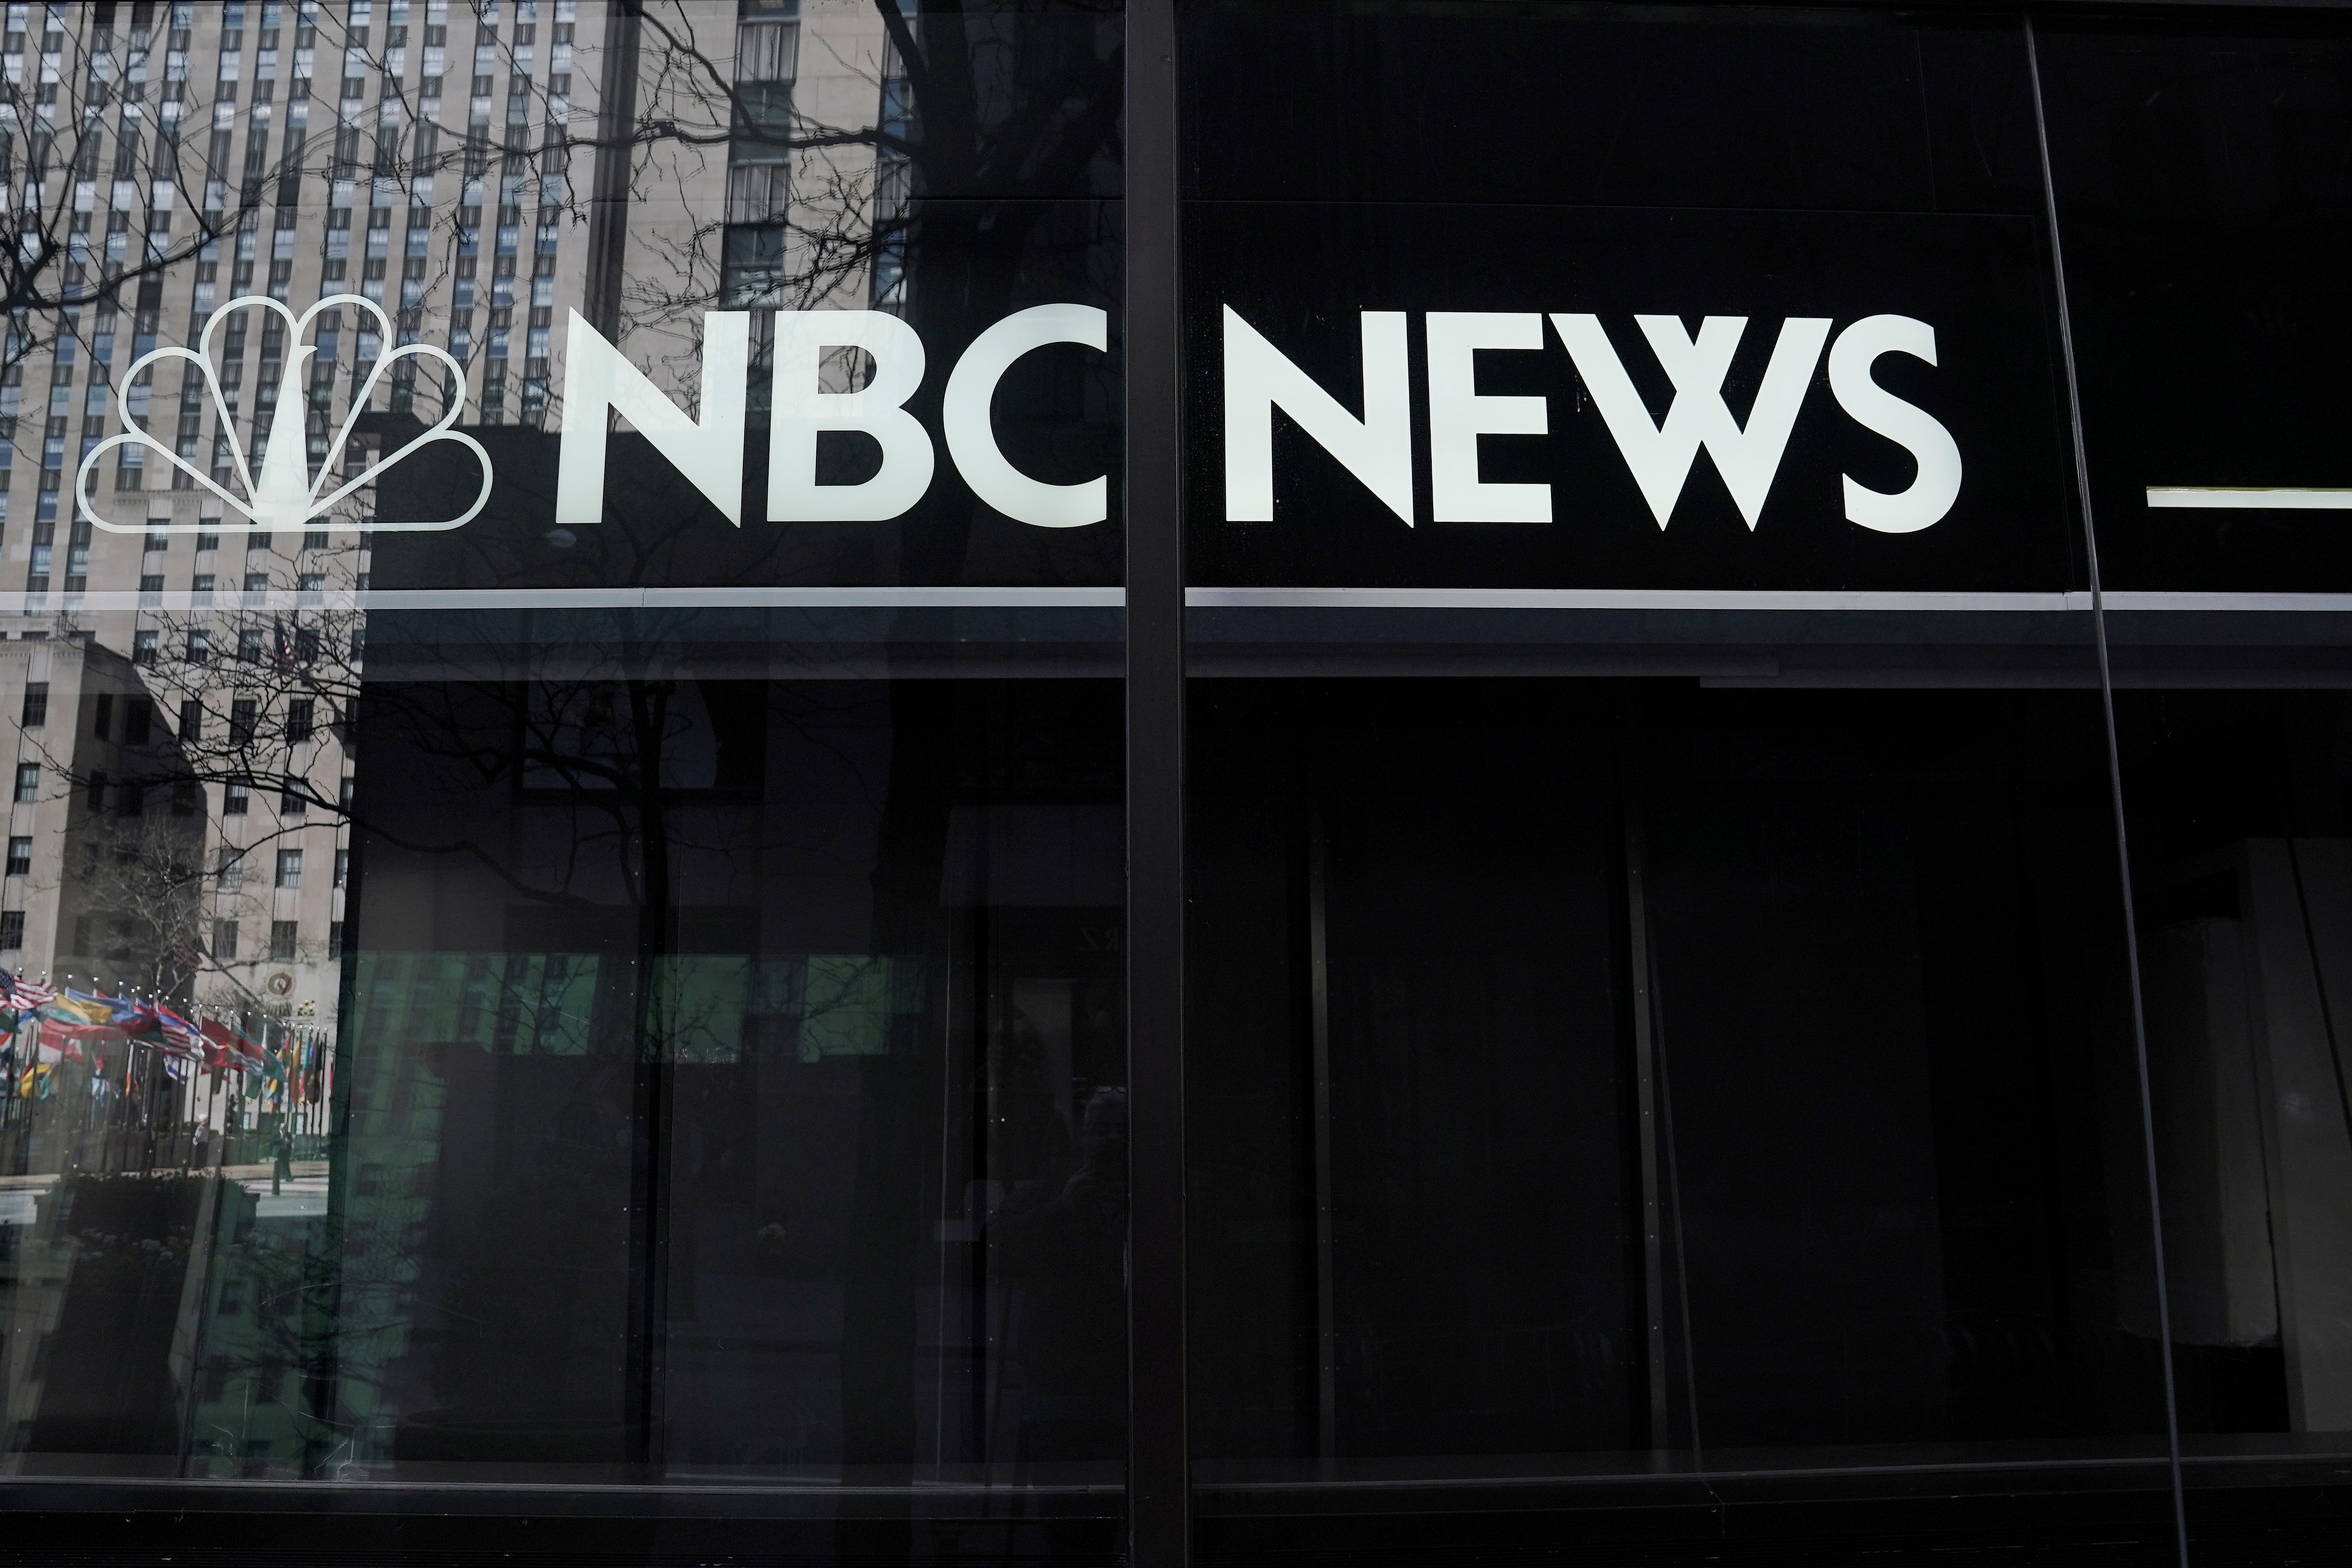 A closed NBC news studio is pictured following the outbreak of coronavirus disease (COVID-19), in the Manhattan borough of New York City, New York, U.S., March 24, 2020. REUTERS/Carlo Allegri